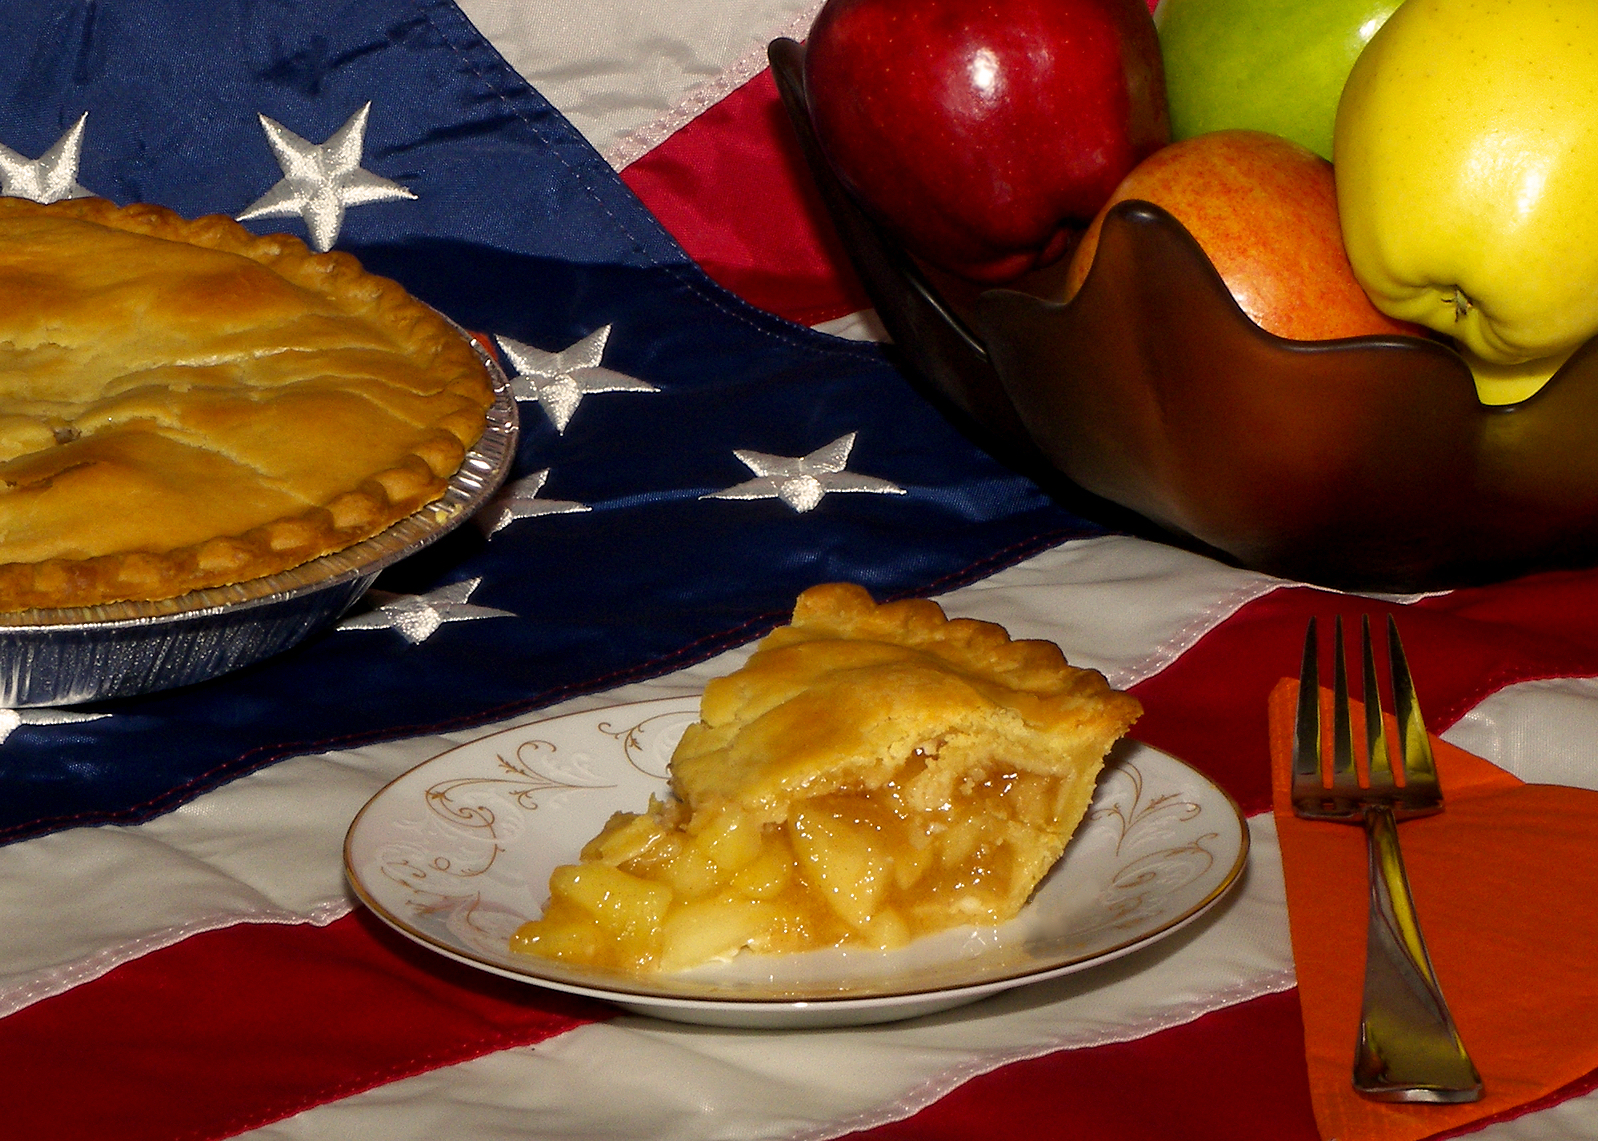 File:American apple pie.jpg - Wikimedia Commons